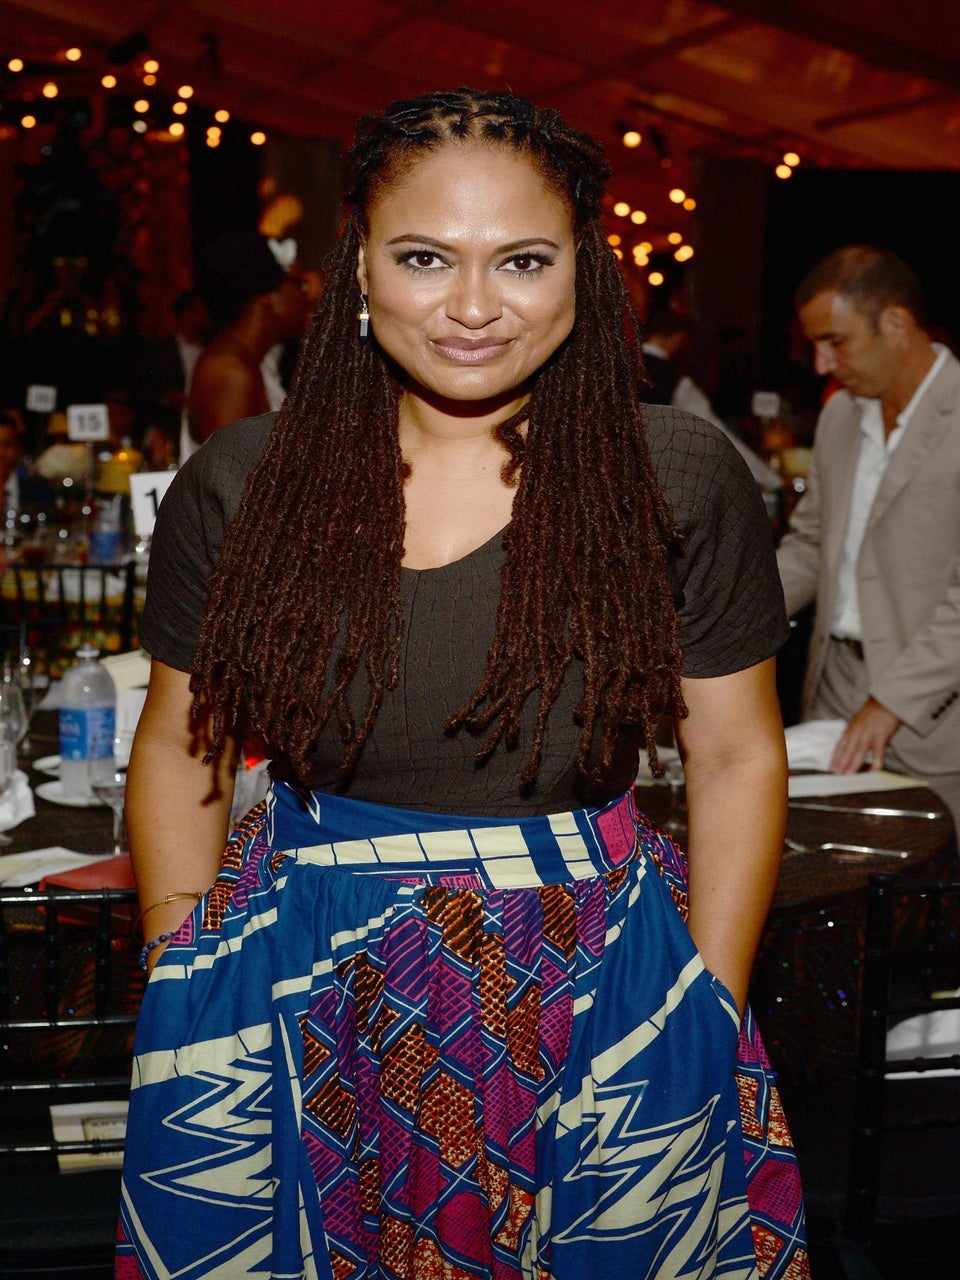 Why Is August 28 So Special To Black People? Ava DuVernay Reveals All In New NMAAHC Film